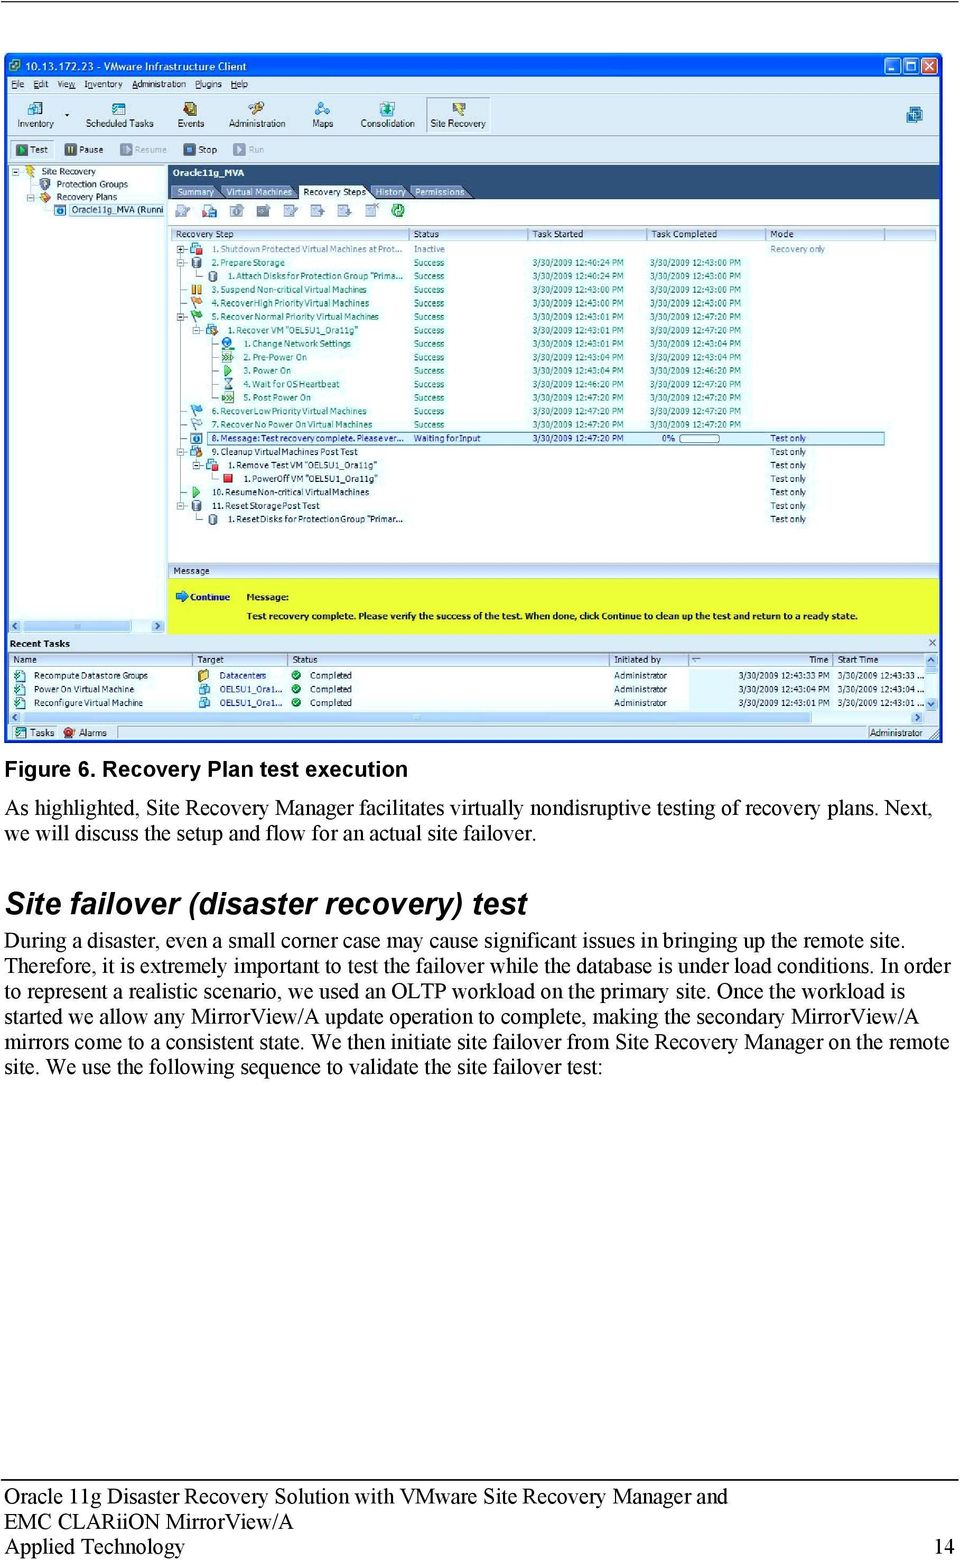 Site failover (disaster recovery) test During a disaster, even a small corner case may cause significant issues in bringing up the remote site.